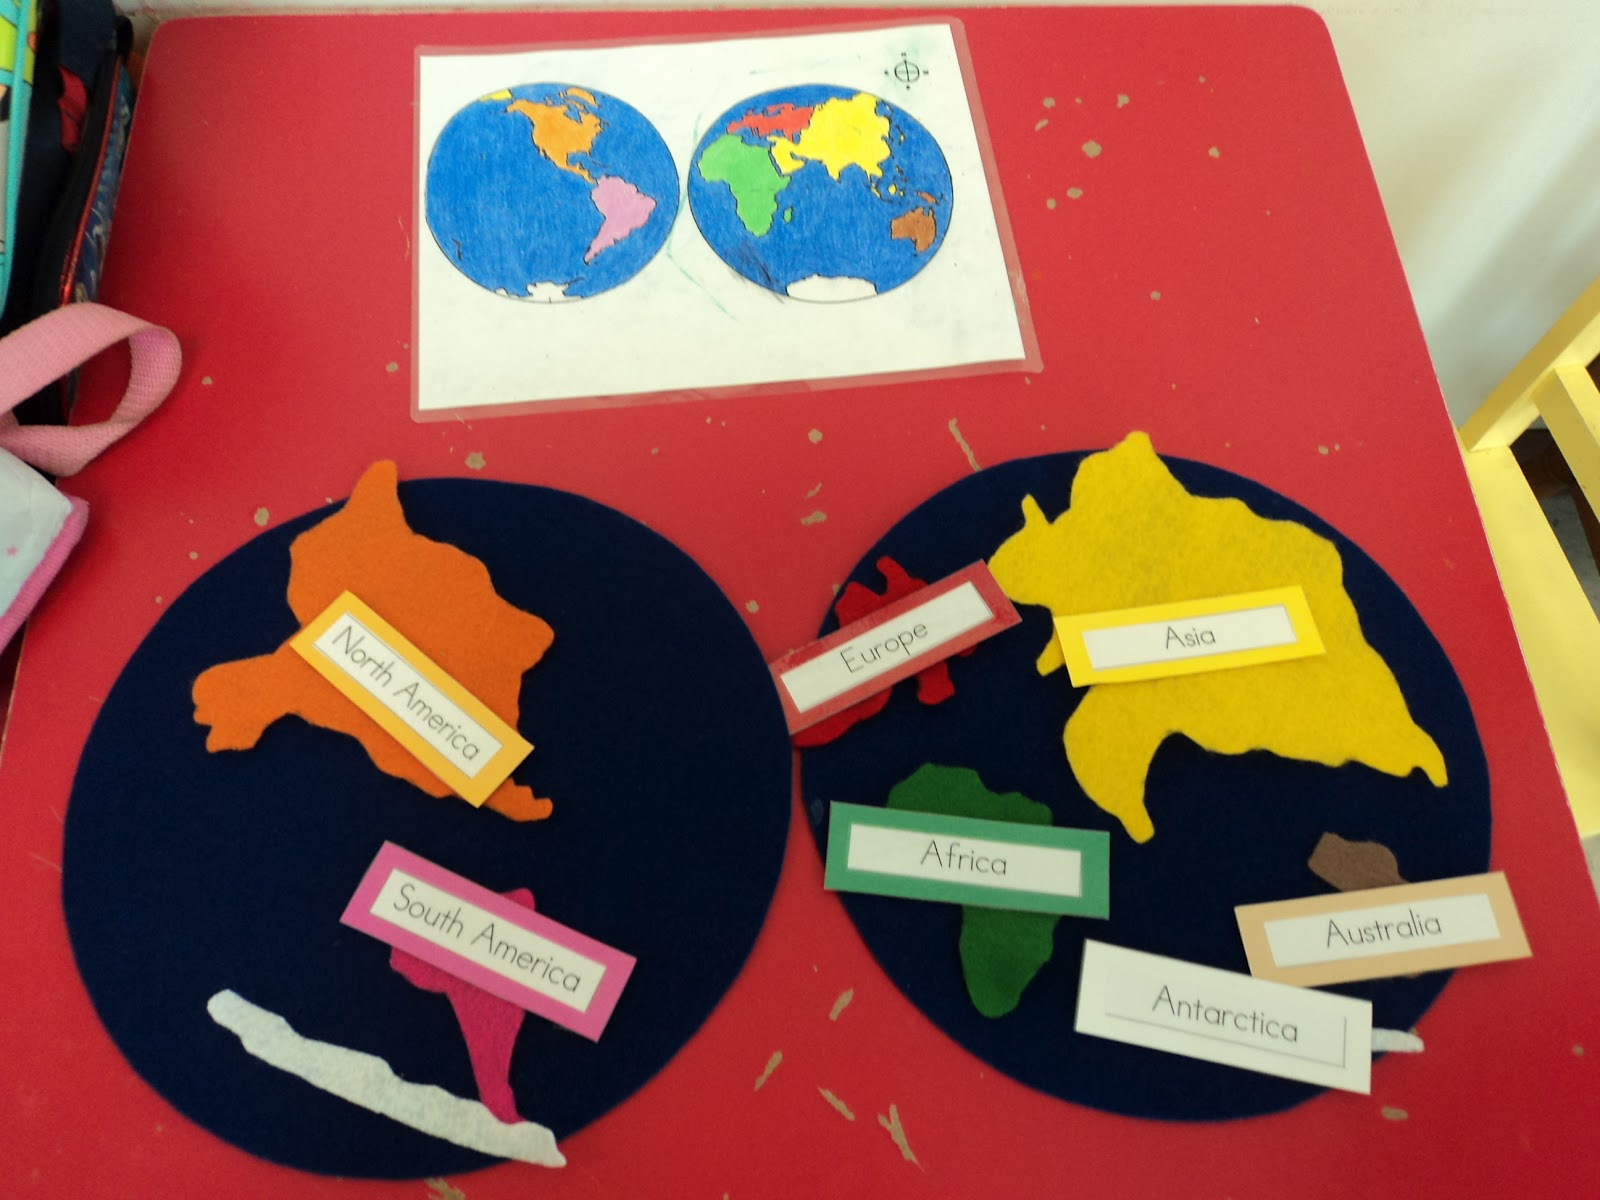 Crazy about montessori felt continents i traced pieces from the world map puzzle onto felt the 2 big blue circles that represent the hemispheres are made out of stiff felt gumiabroncs Images